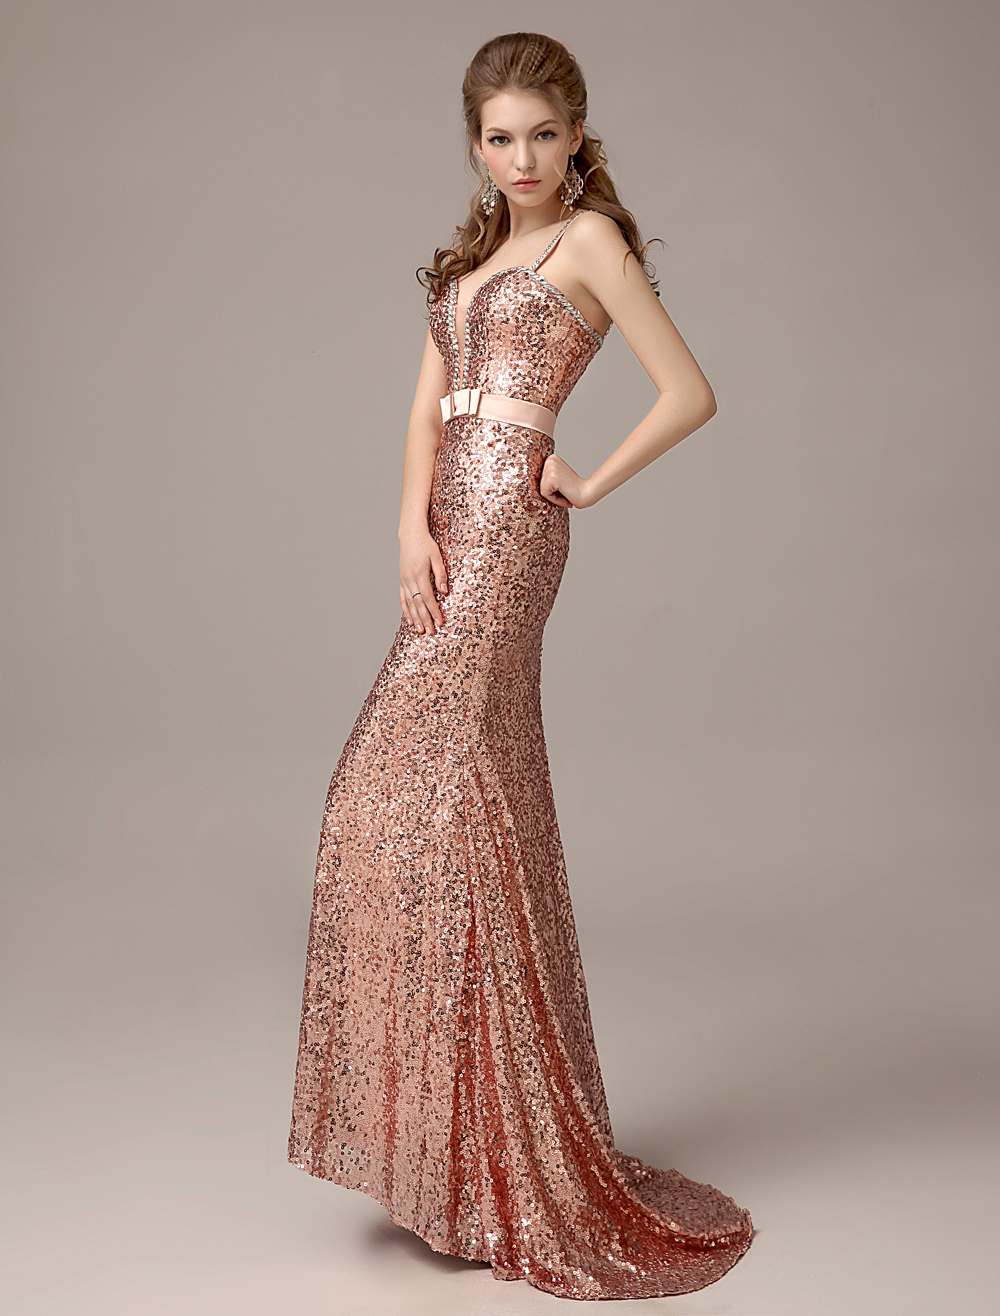 Rose Gold Prom Dresses 2018 Long Nude Mermaid Evening Dress Sequined Straps Party Dress With Train